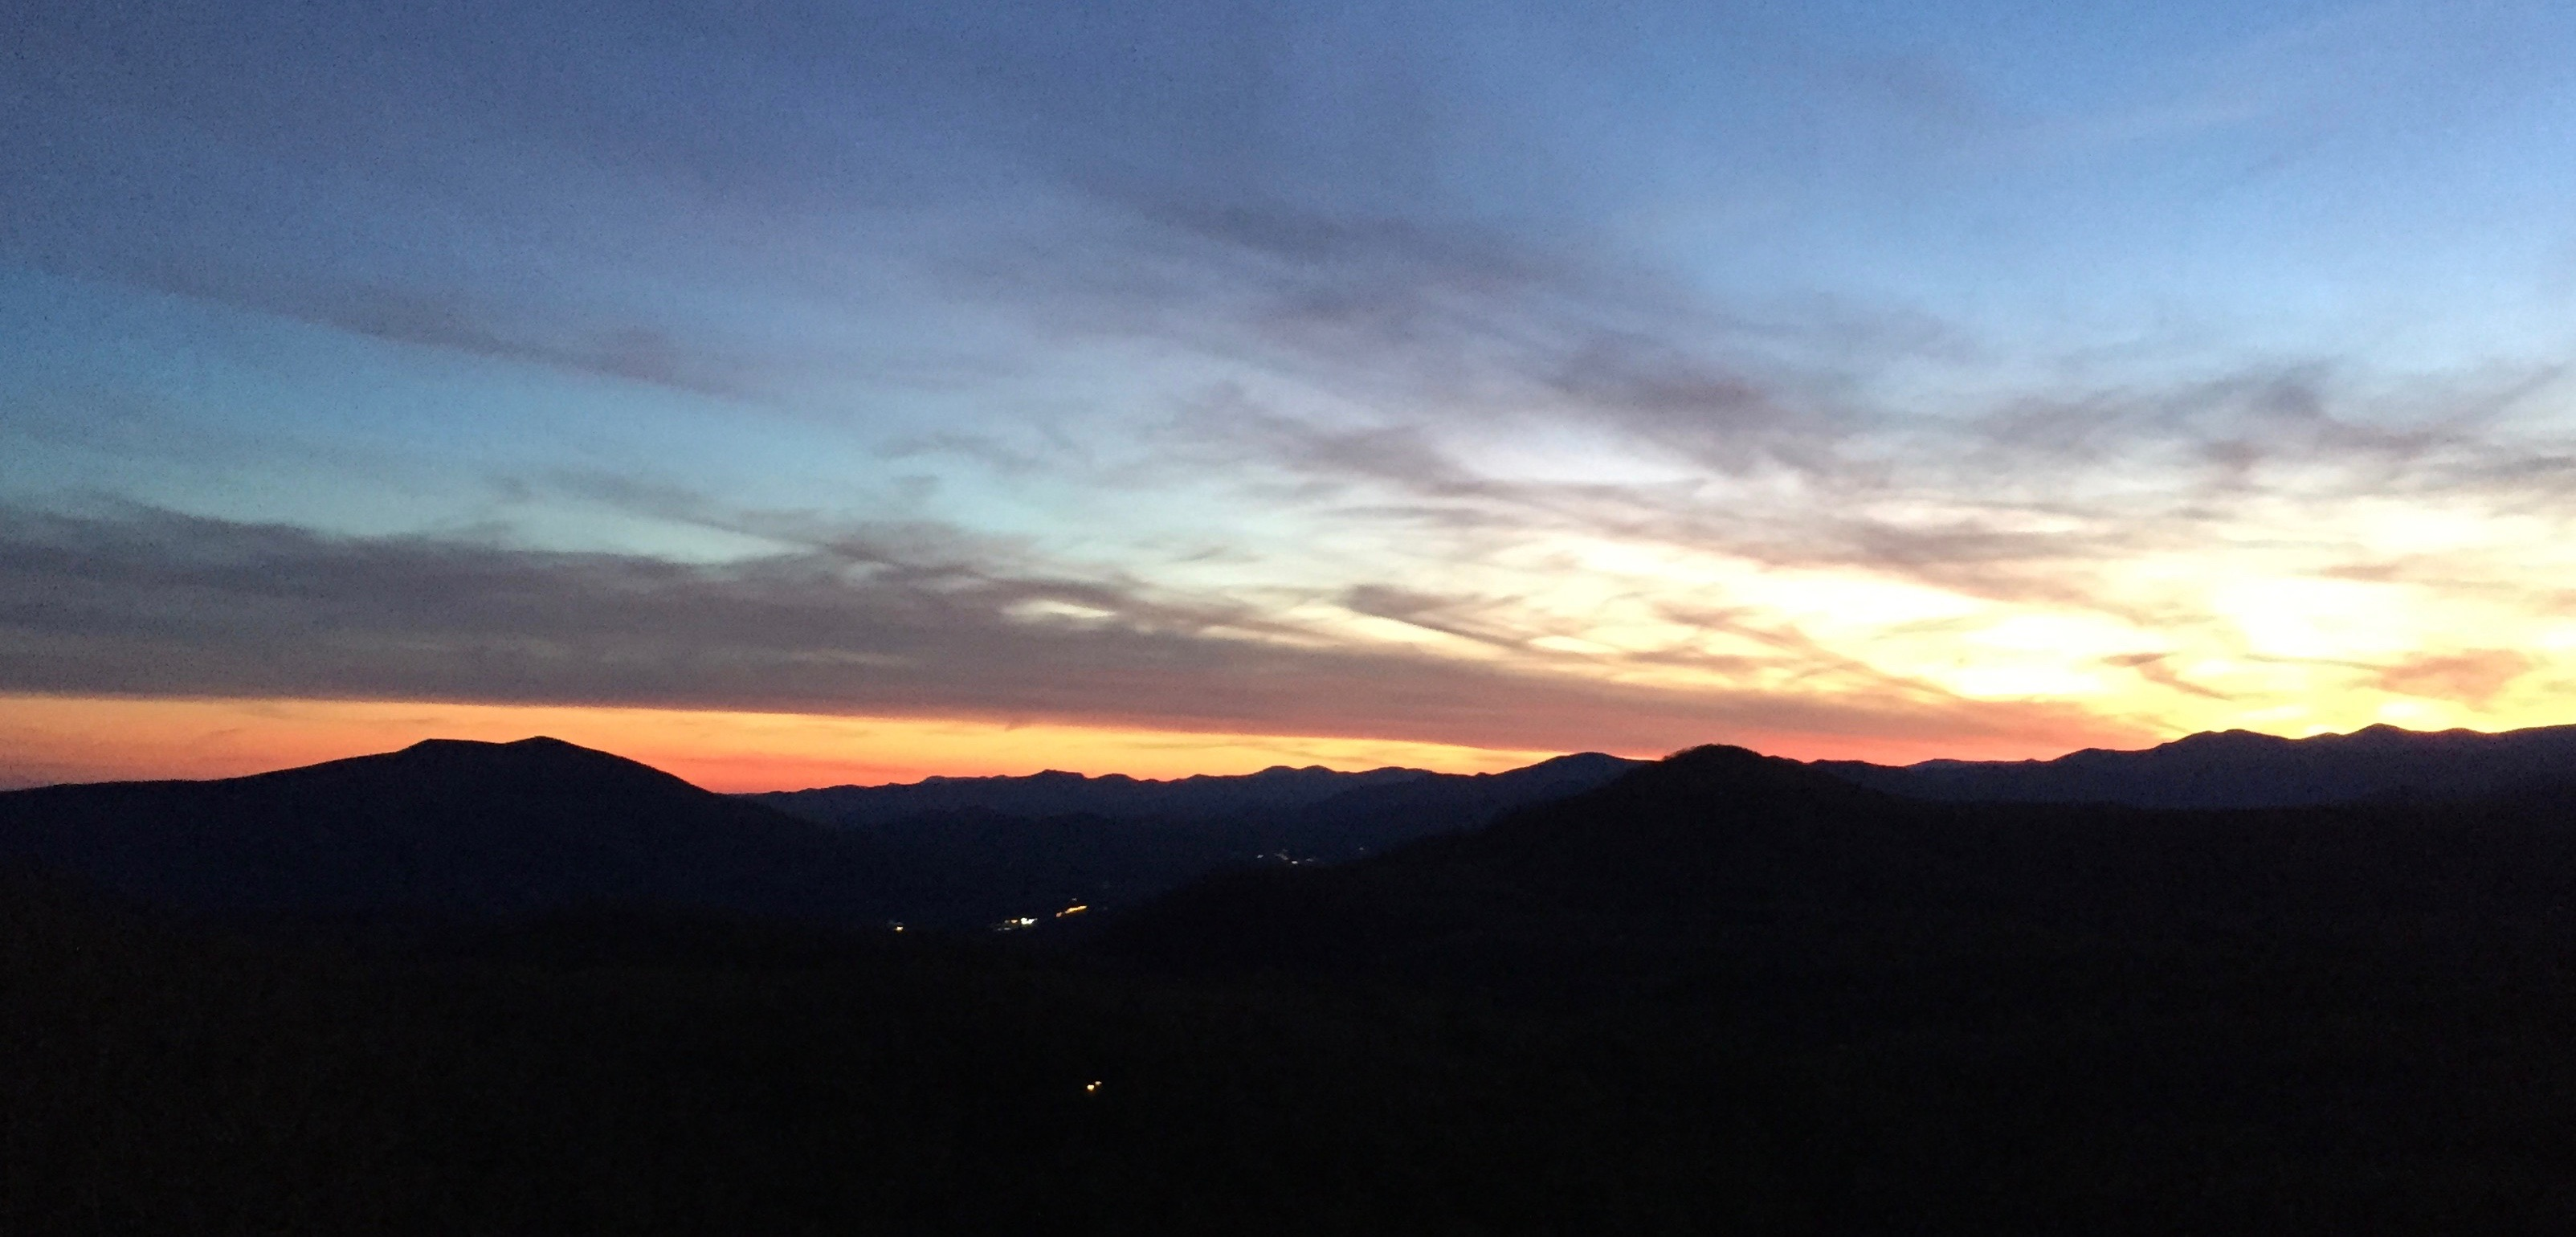 Caption: Sunset over the Blue Ridge Mountains near Little Switzerland, NC. This final weekly Across the Blue Ridge broadcast episode includes a songcatcher story, a feature on a new Highwoods String Band video documentary, and plenty of classic tunes and songs fro, Credit: Paul Brown